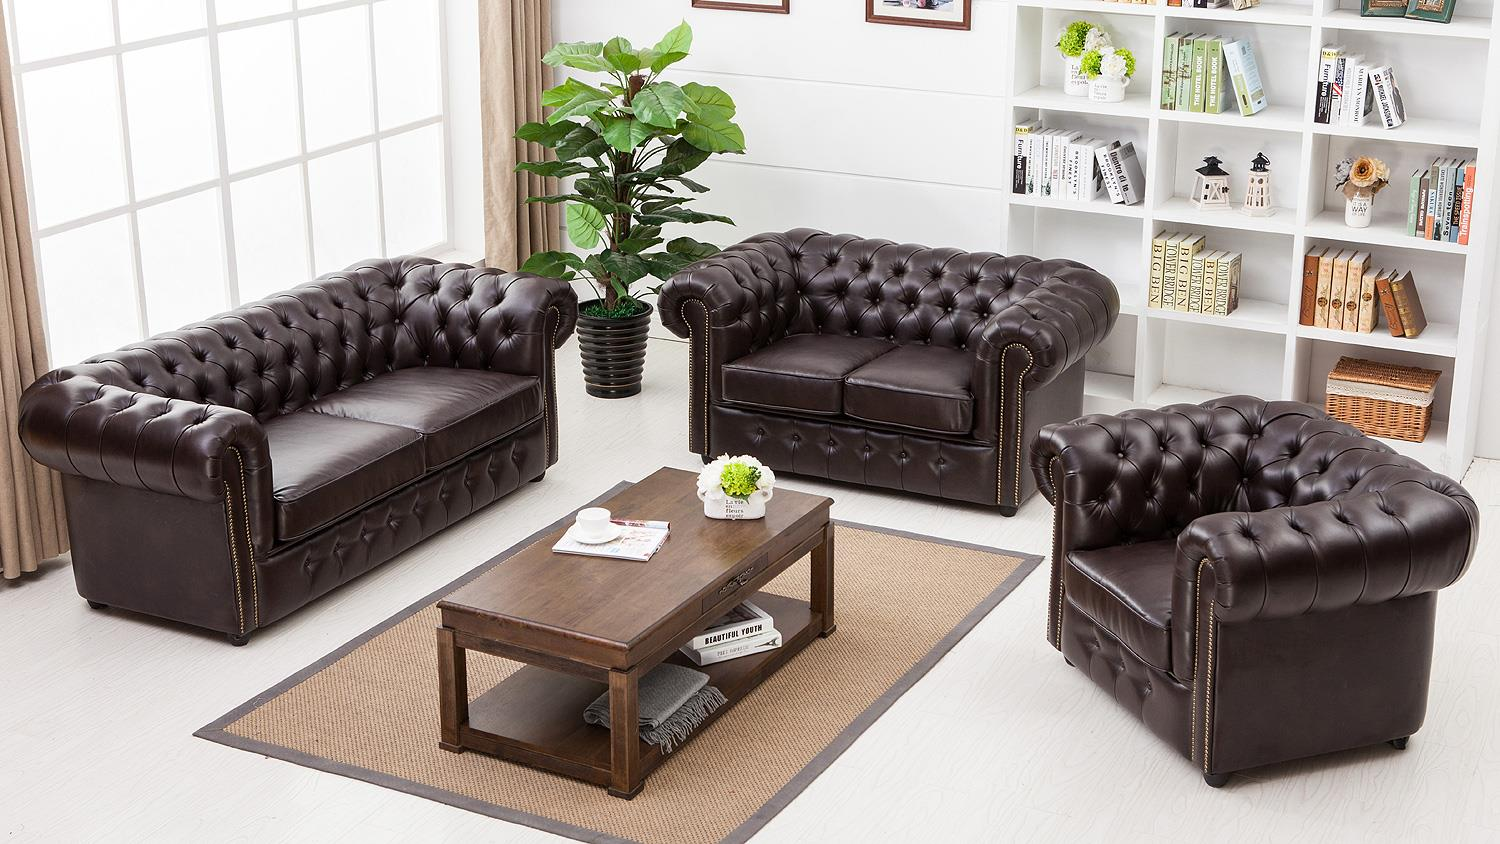 garnitur 3 2 1 chesterfield dunkelbraun gl nzend. Black Bedroom Furniture Sets. Home Design Ideas